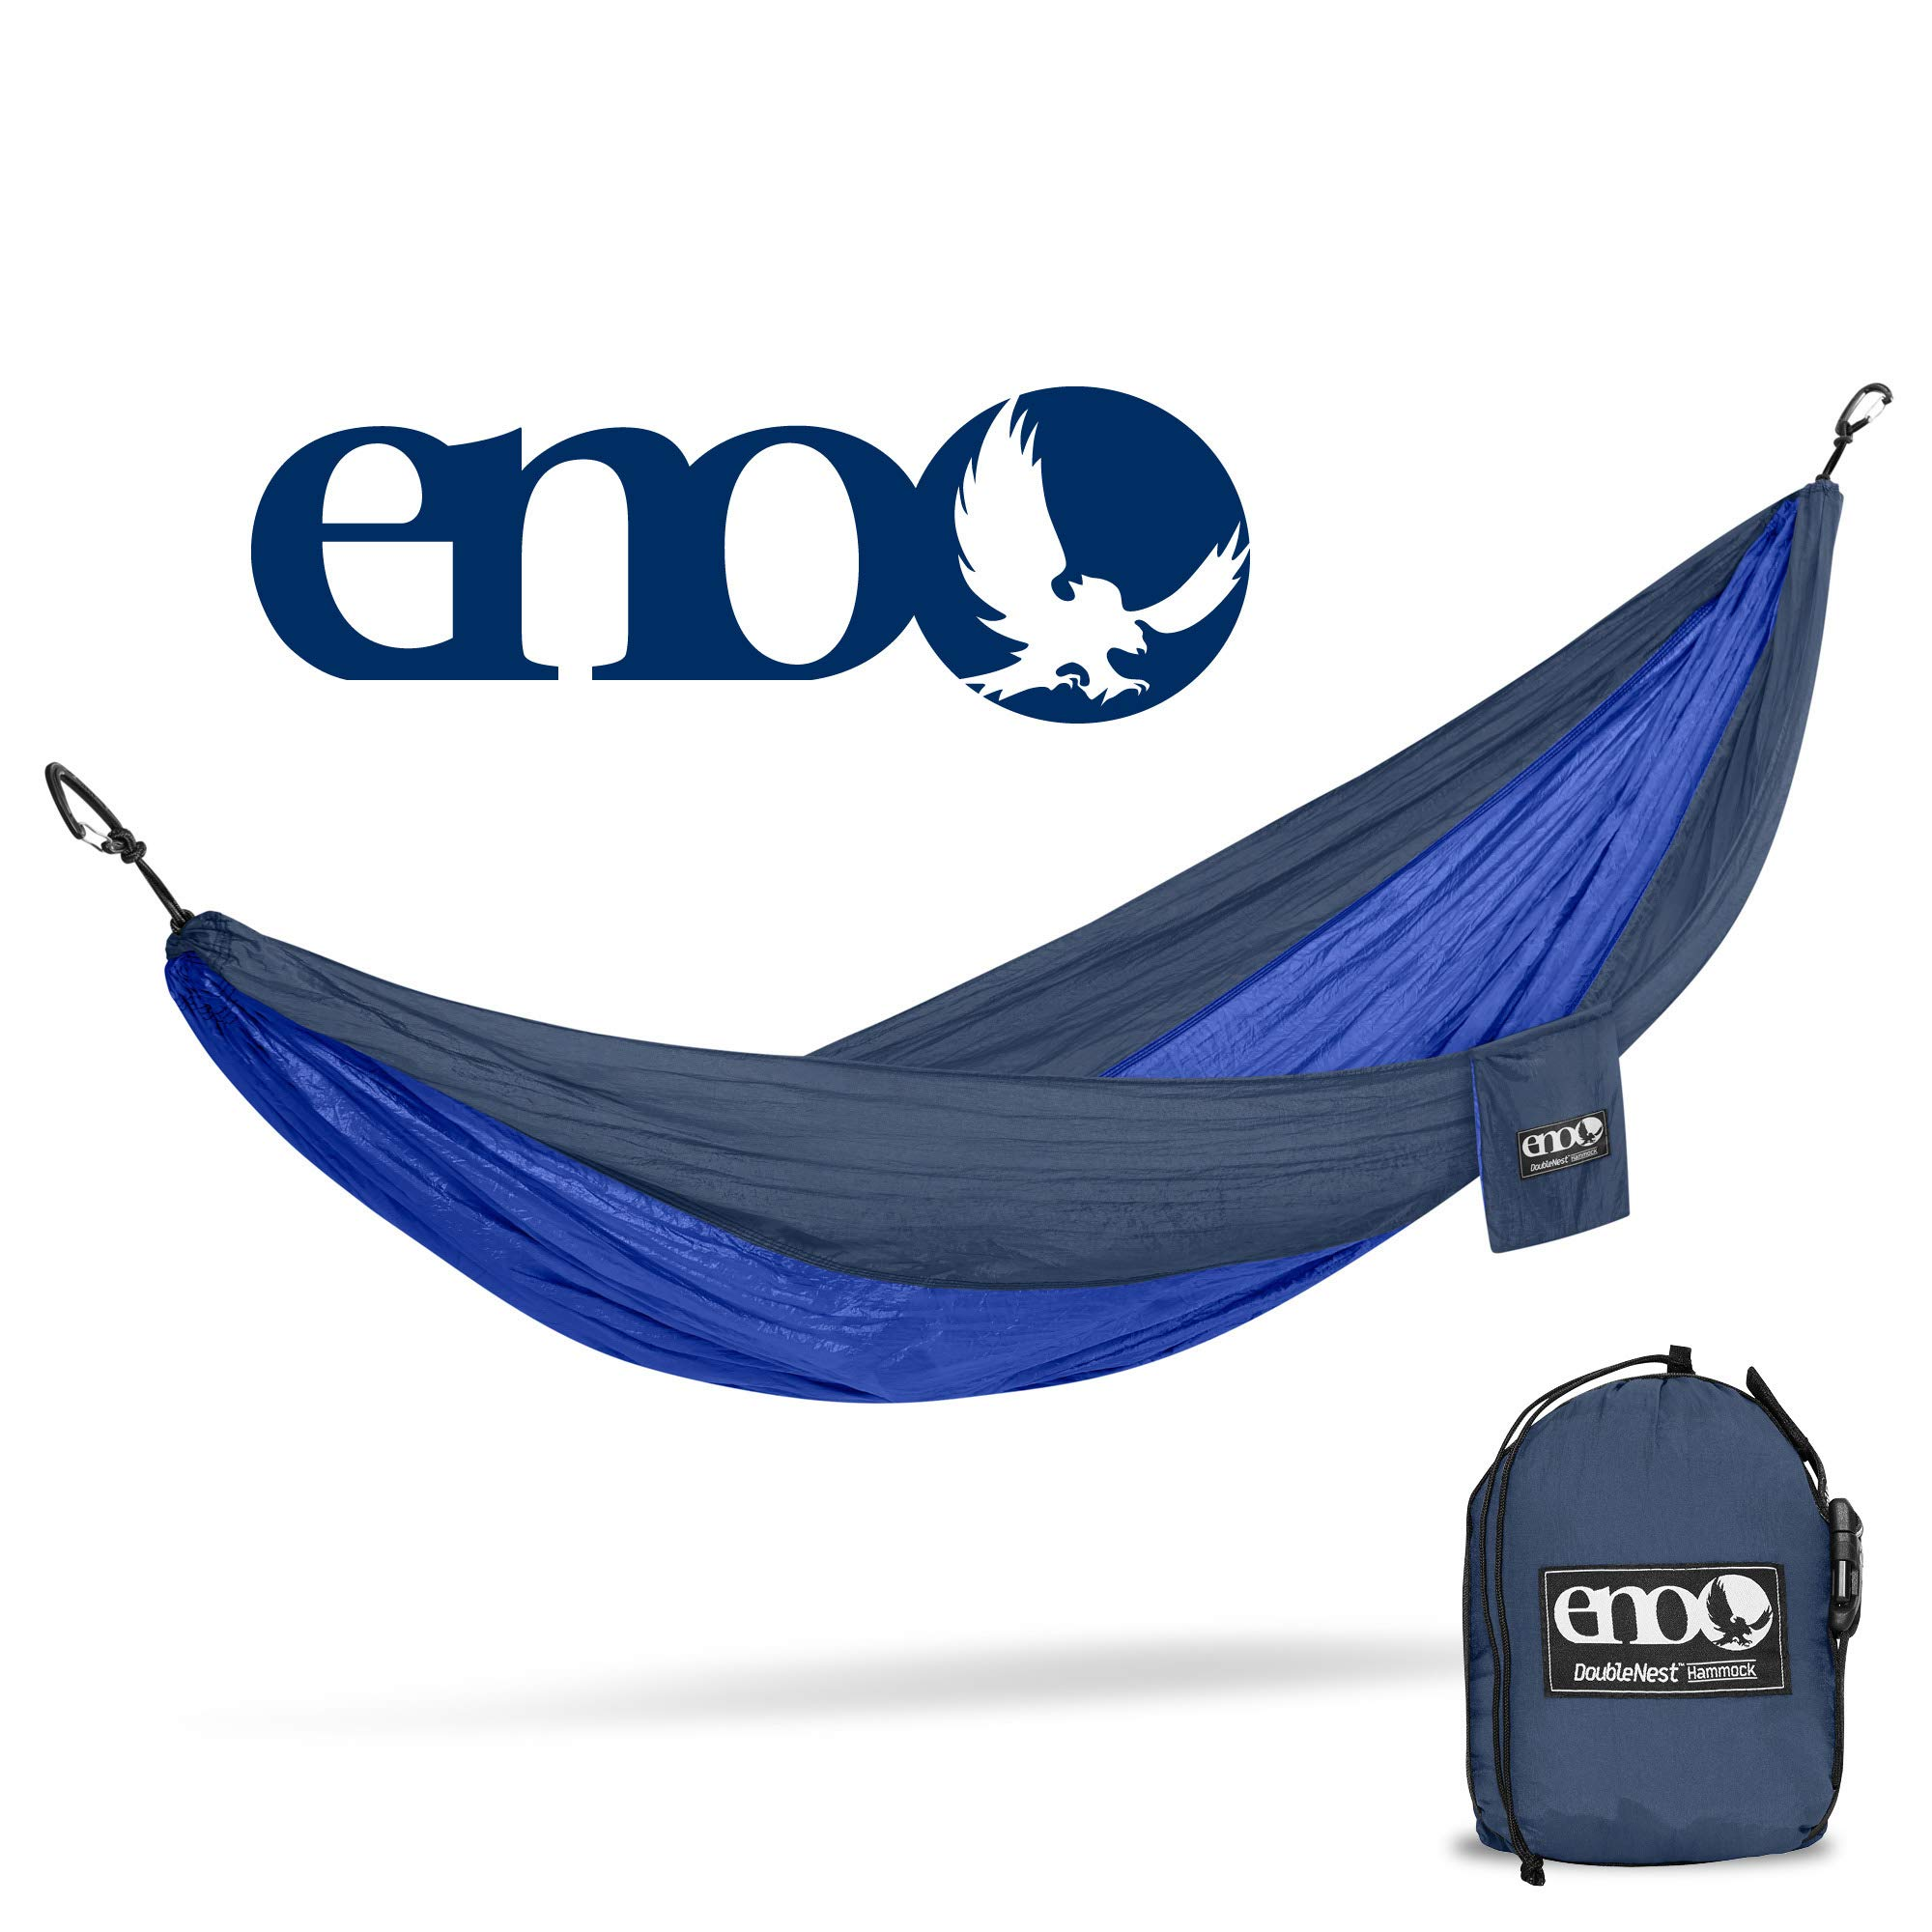 ENO - Eagles Nest Outfitters DoubleNest Hammock, Portable Hammock for Two, Navy/Royal